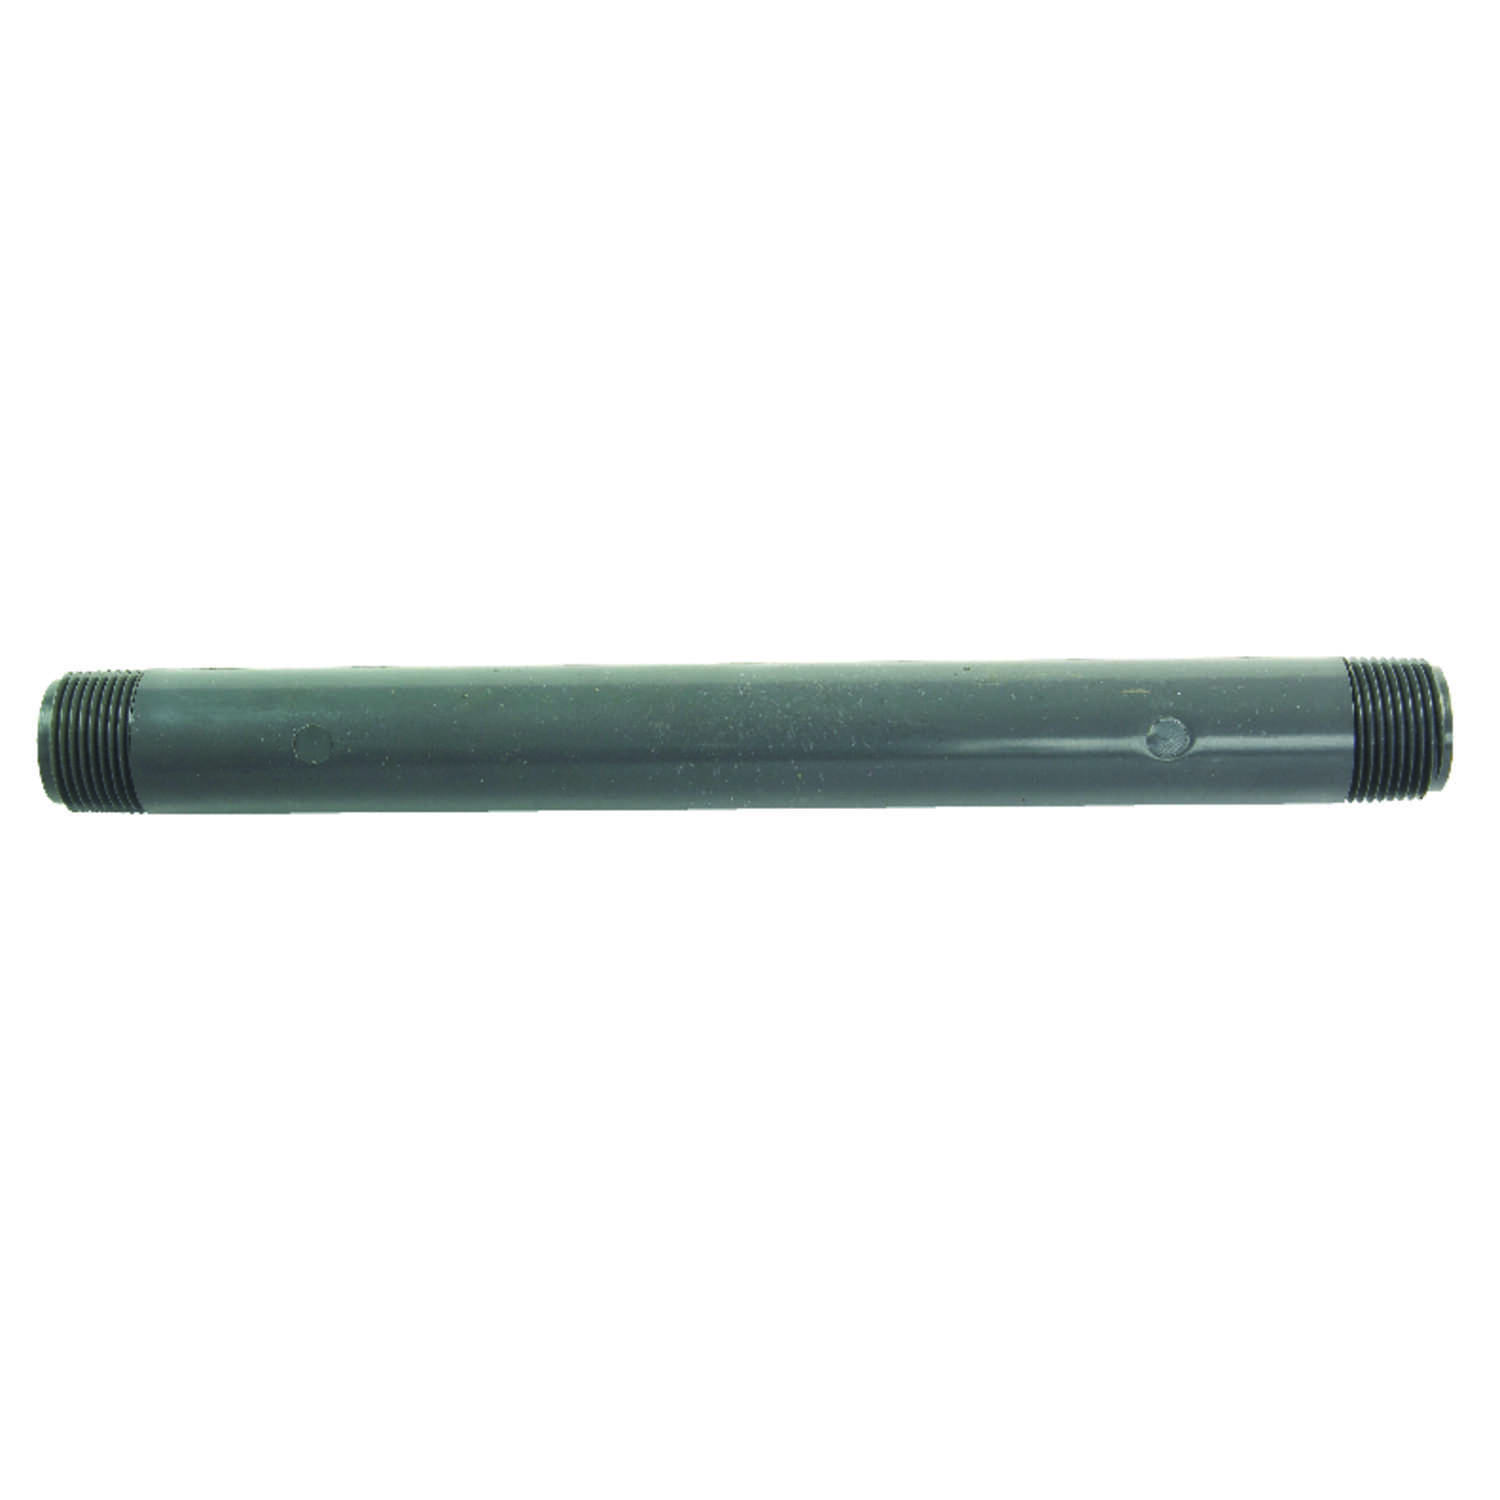 B&K  Schedule 80  1/2 in. MPT   x 1/2 in. Dia. MPT  PVC  Pipe Nipple